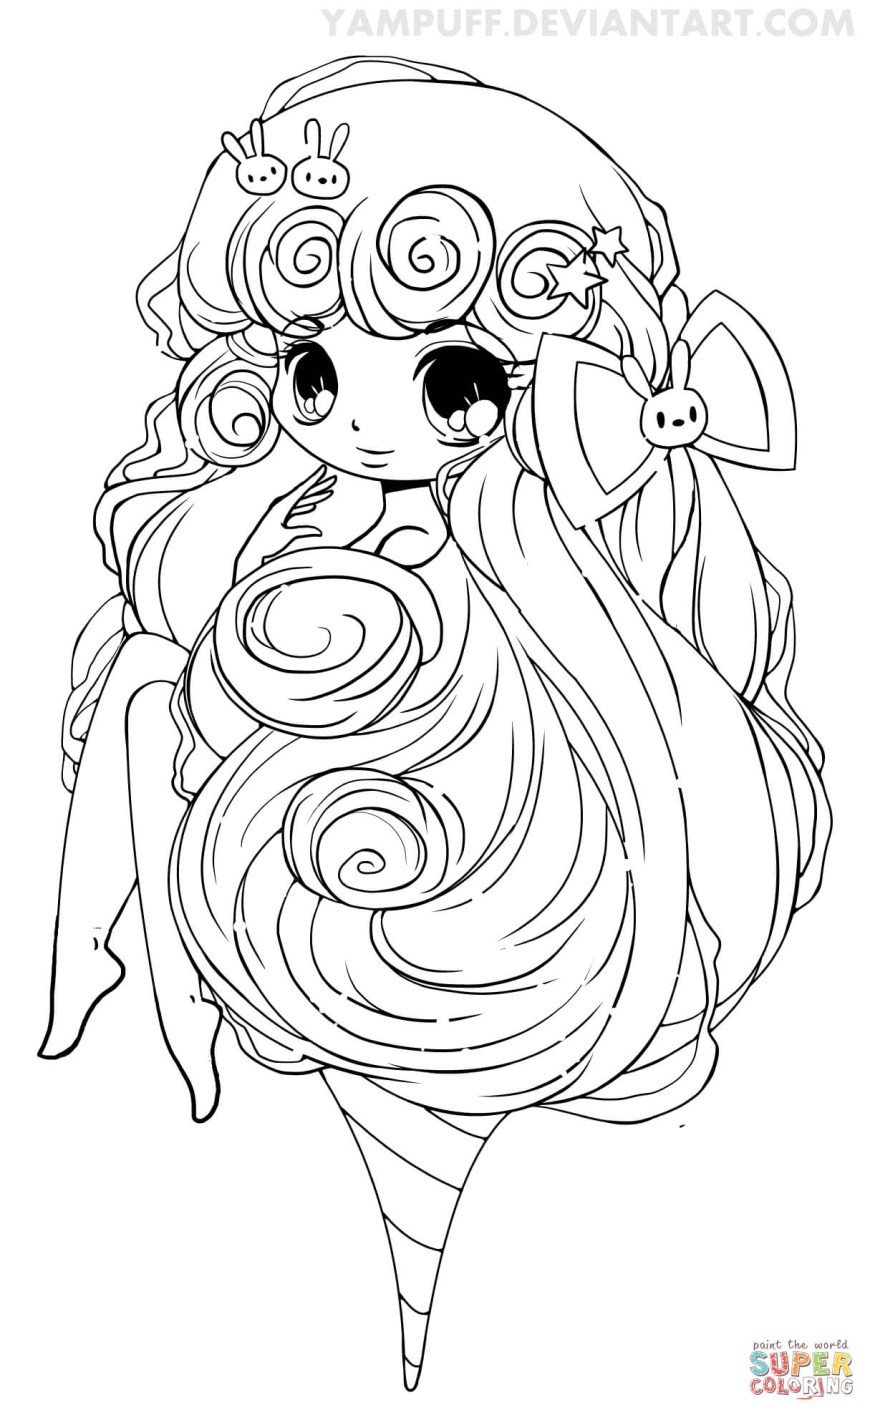 Chibi Coloring Pages Chibi Cotton Candy Girl Coloring Page Free Printable Coloring Pages